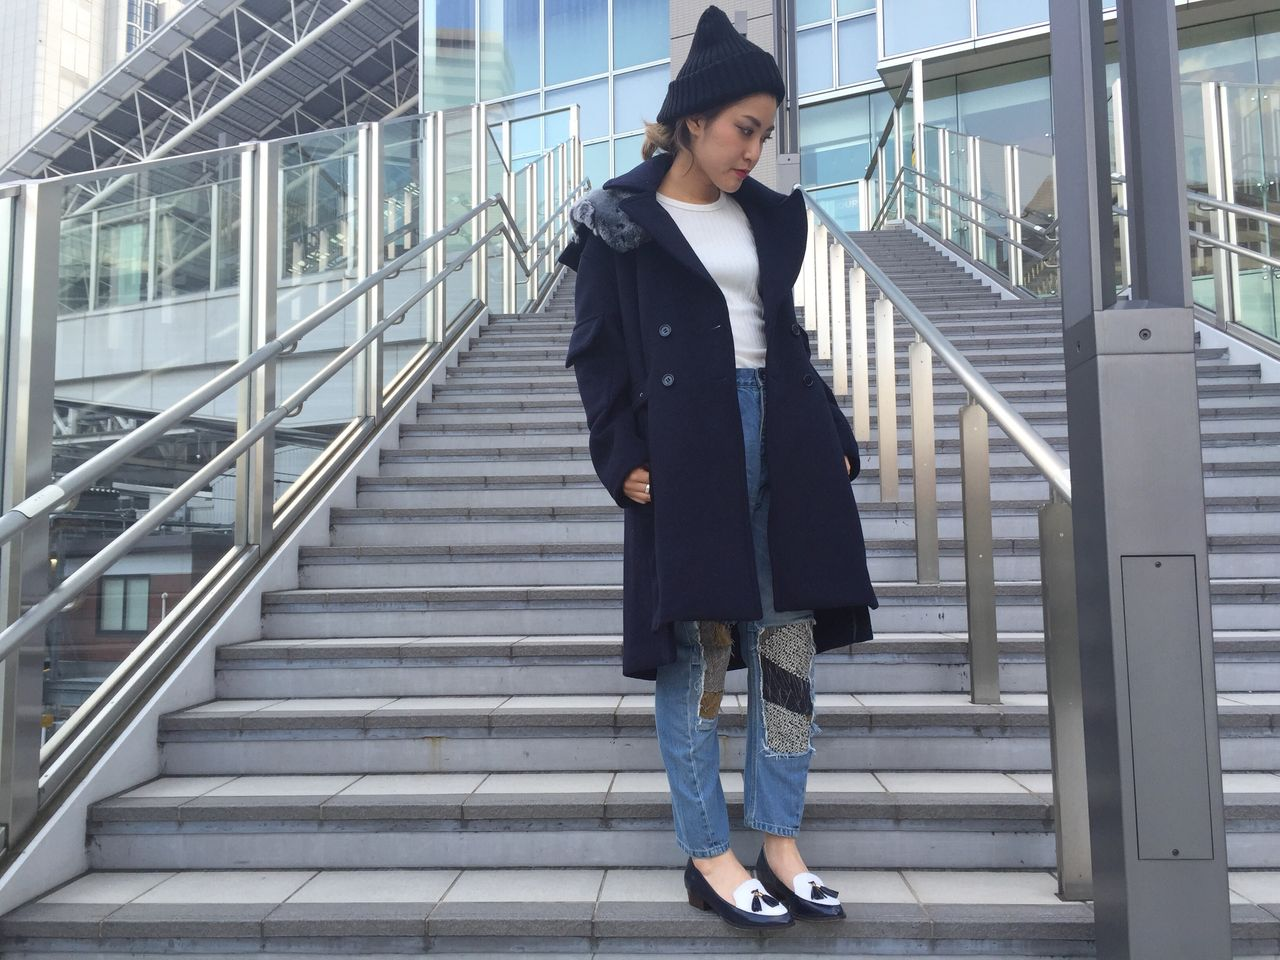 OUTER/¥85320 TOPS/¥10260 BOTTOM/¥35640 SHOES/¥18360